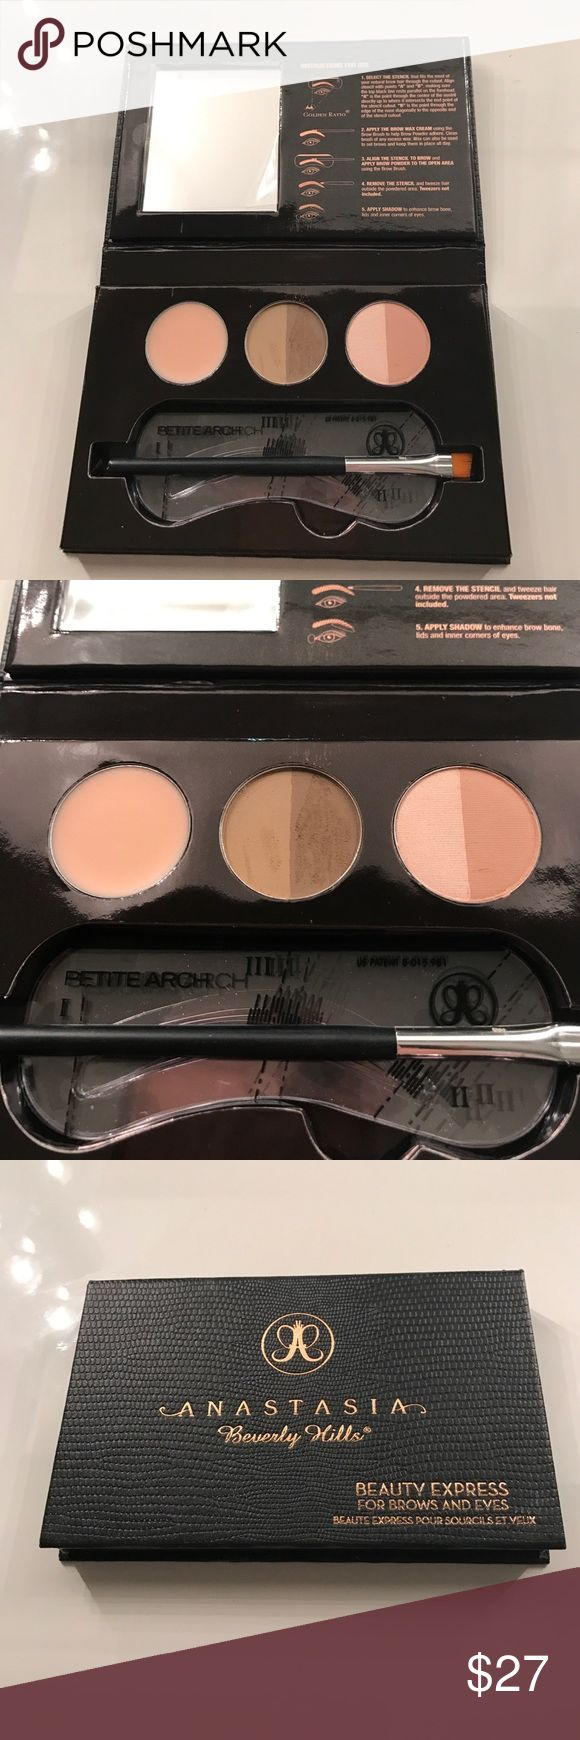 Anastasia beauty express for brows and eyes Usage shown. The shade is blonde. Anastasia Beverly Hills Makeup